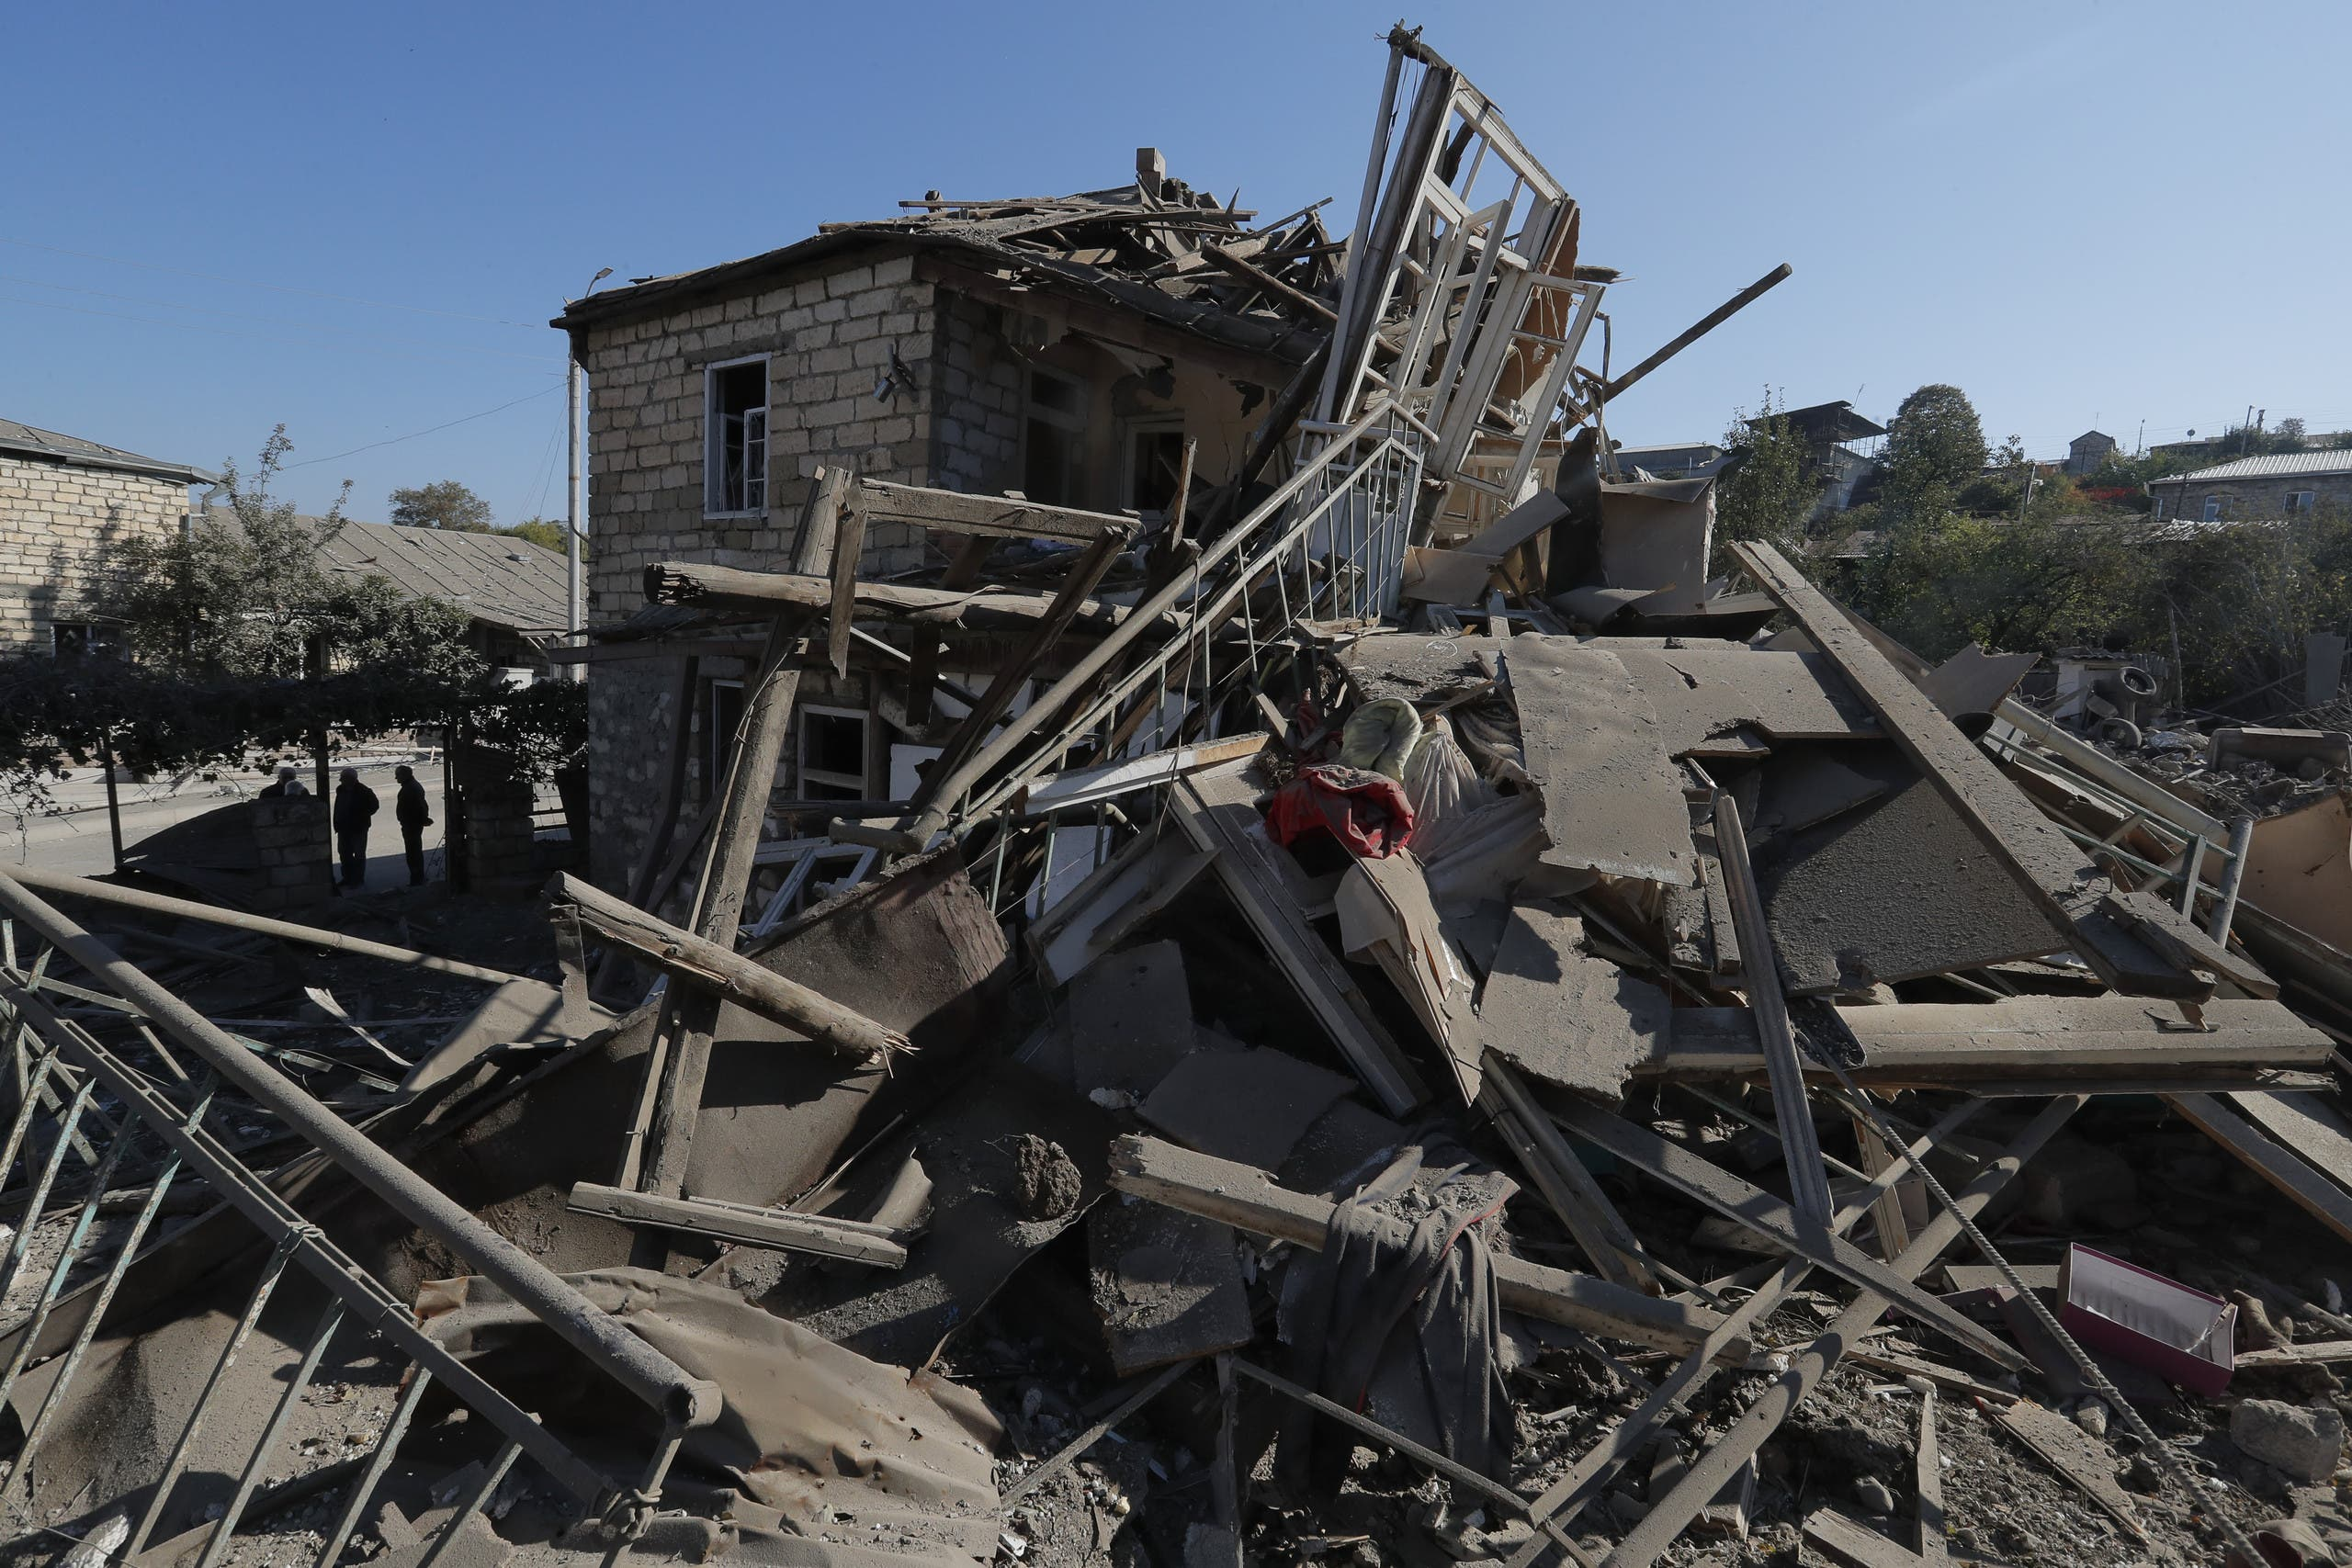 A view shows theA view shows the ruins of a building following recent shelling during a military conflict over the breakaway region of Nagorno-Karabakh. (File photo: Reuters)